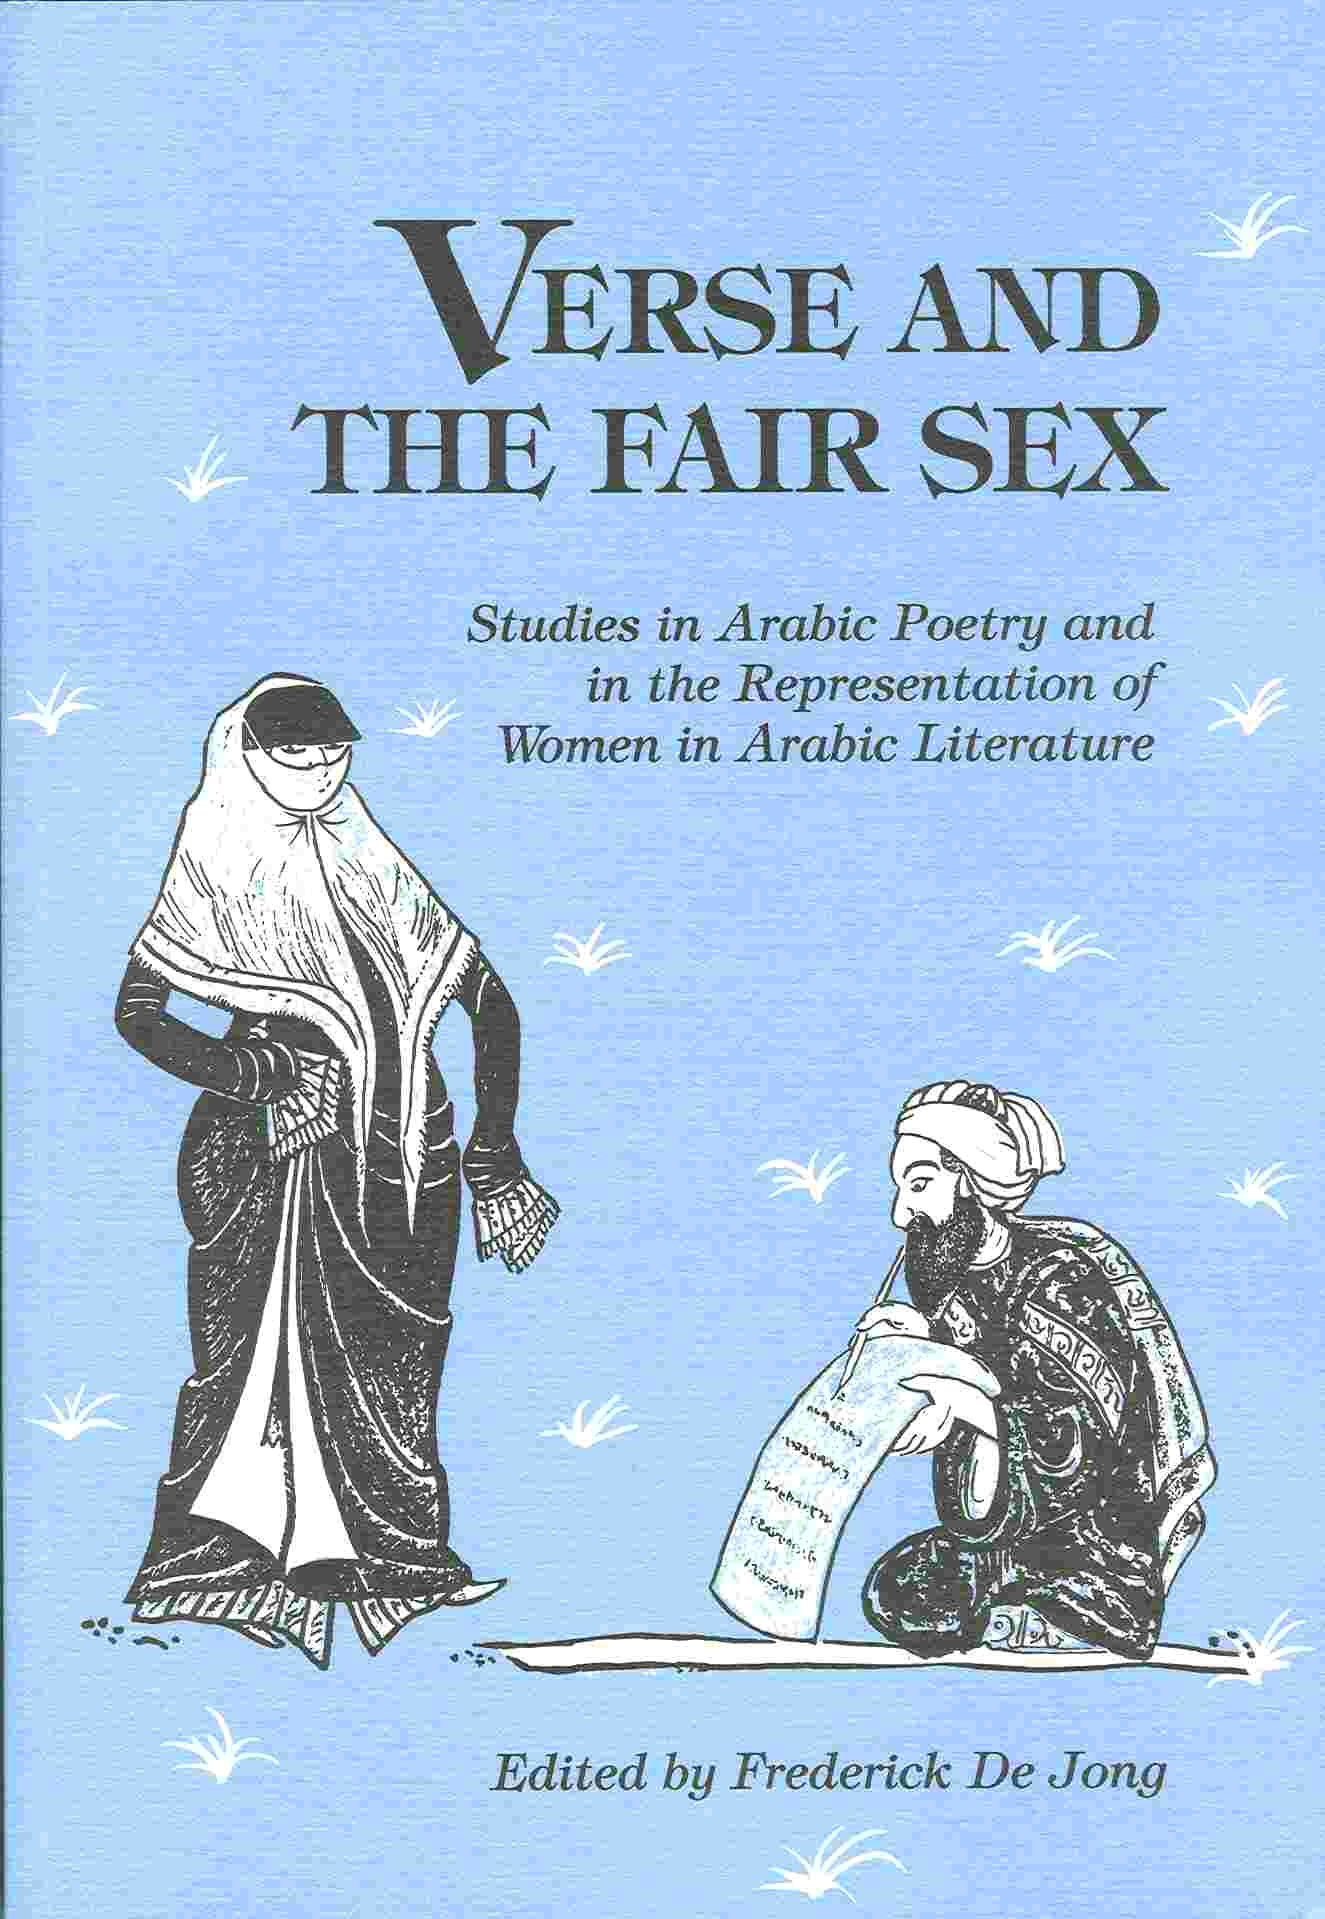 The role of women in medieval Andalusian Arabic story-telling